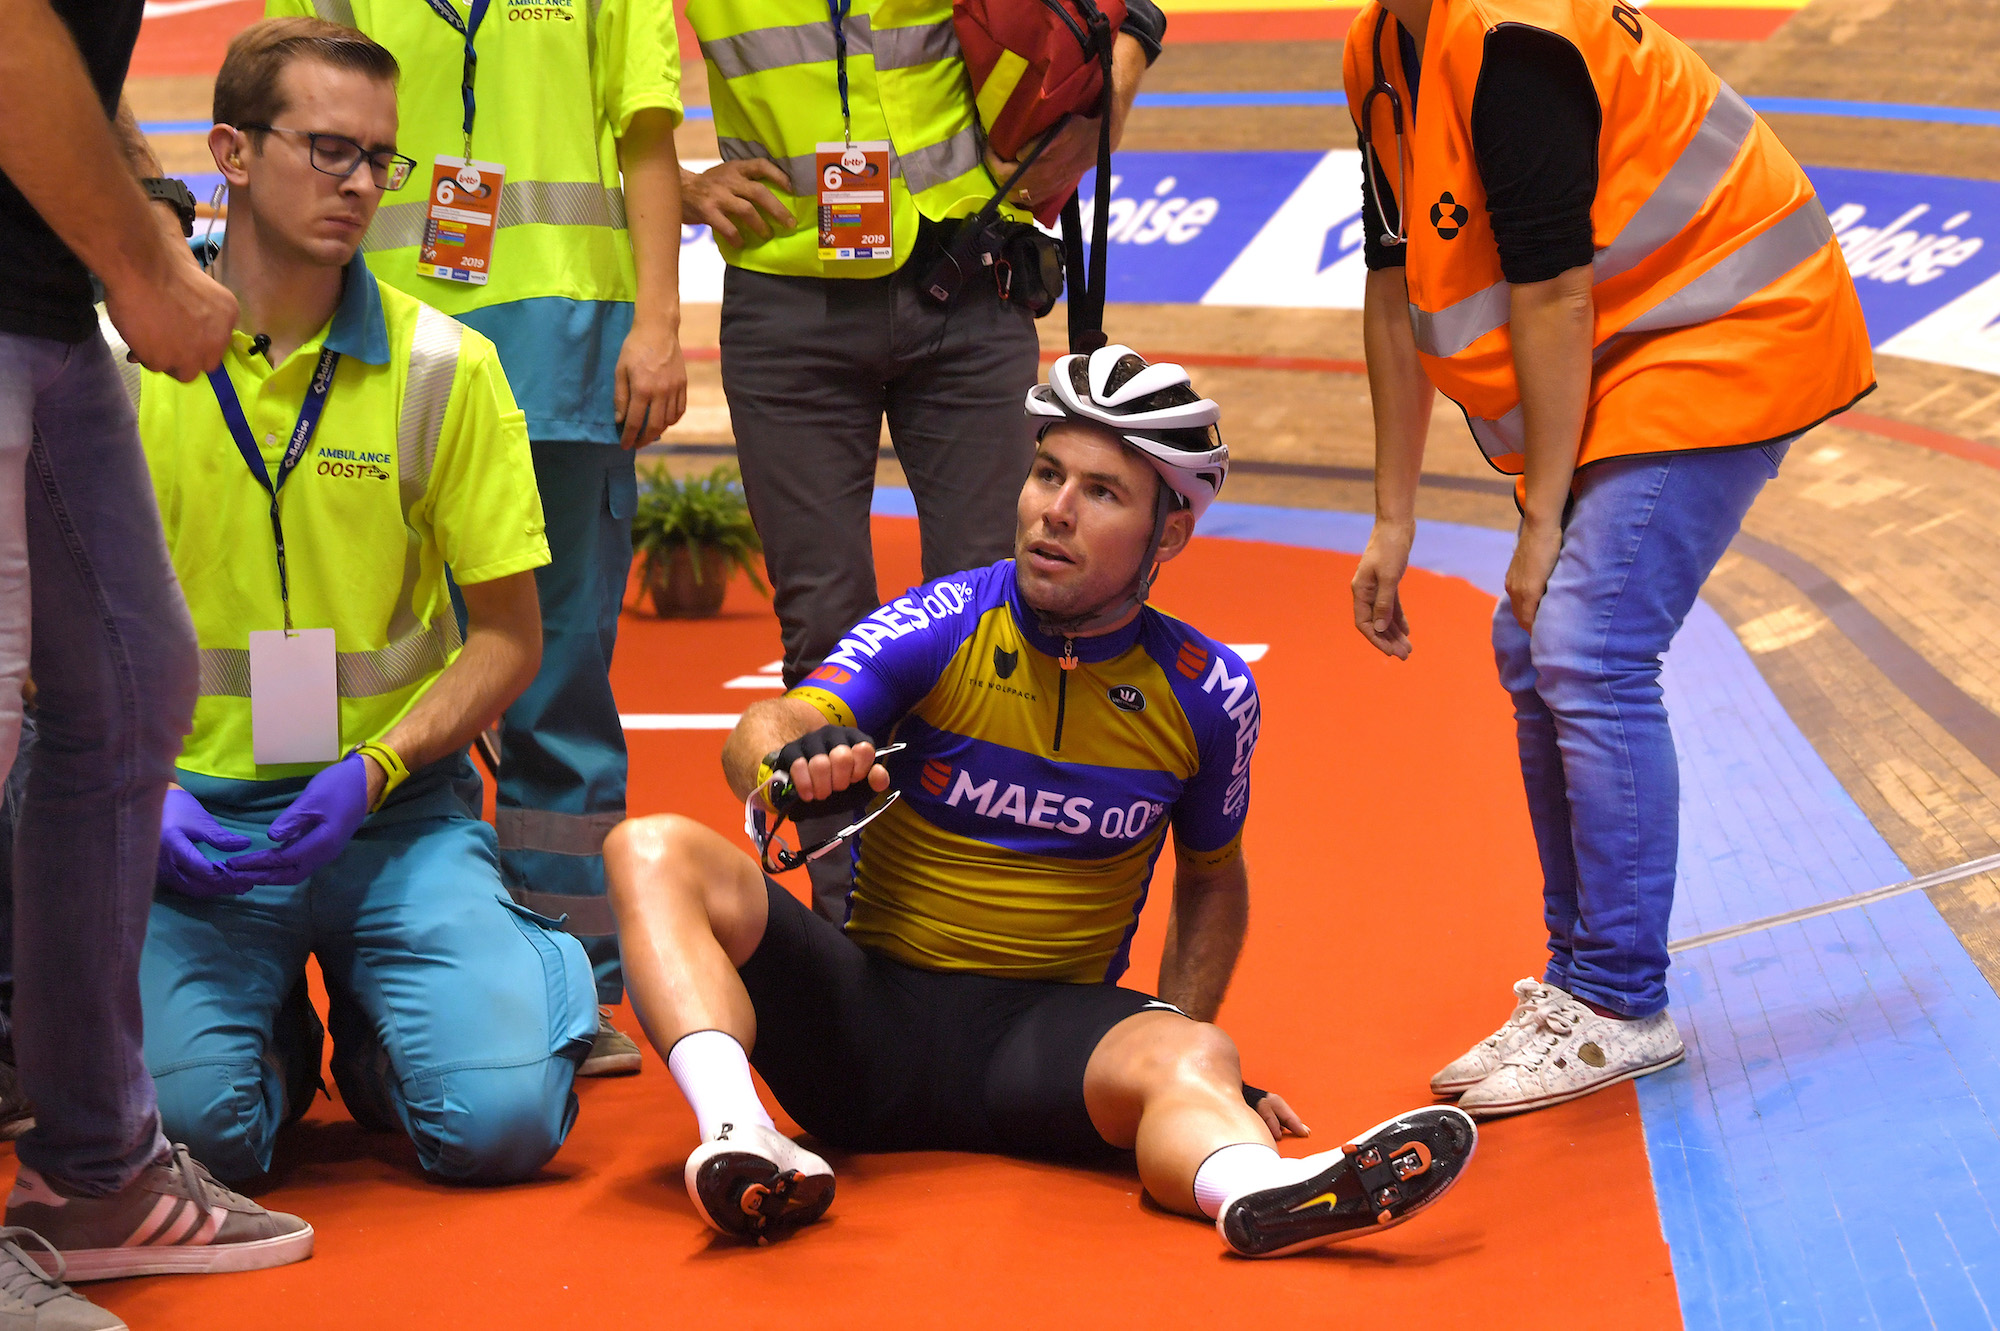 Mark Cavendish crashes at 70km/h during opening night of Ghent Six Day